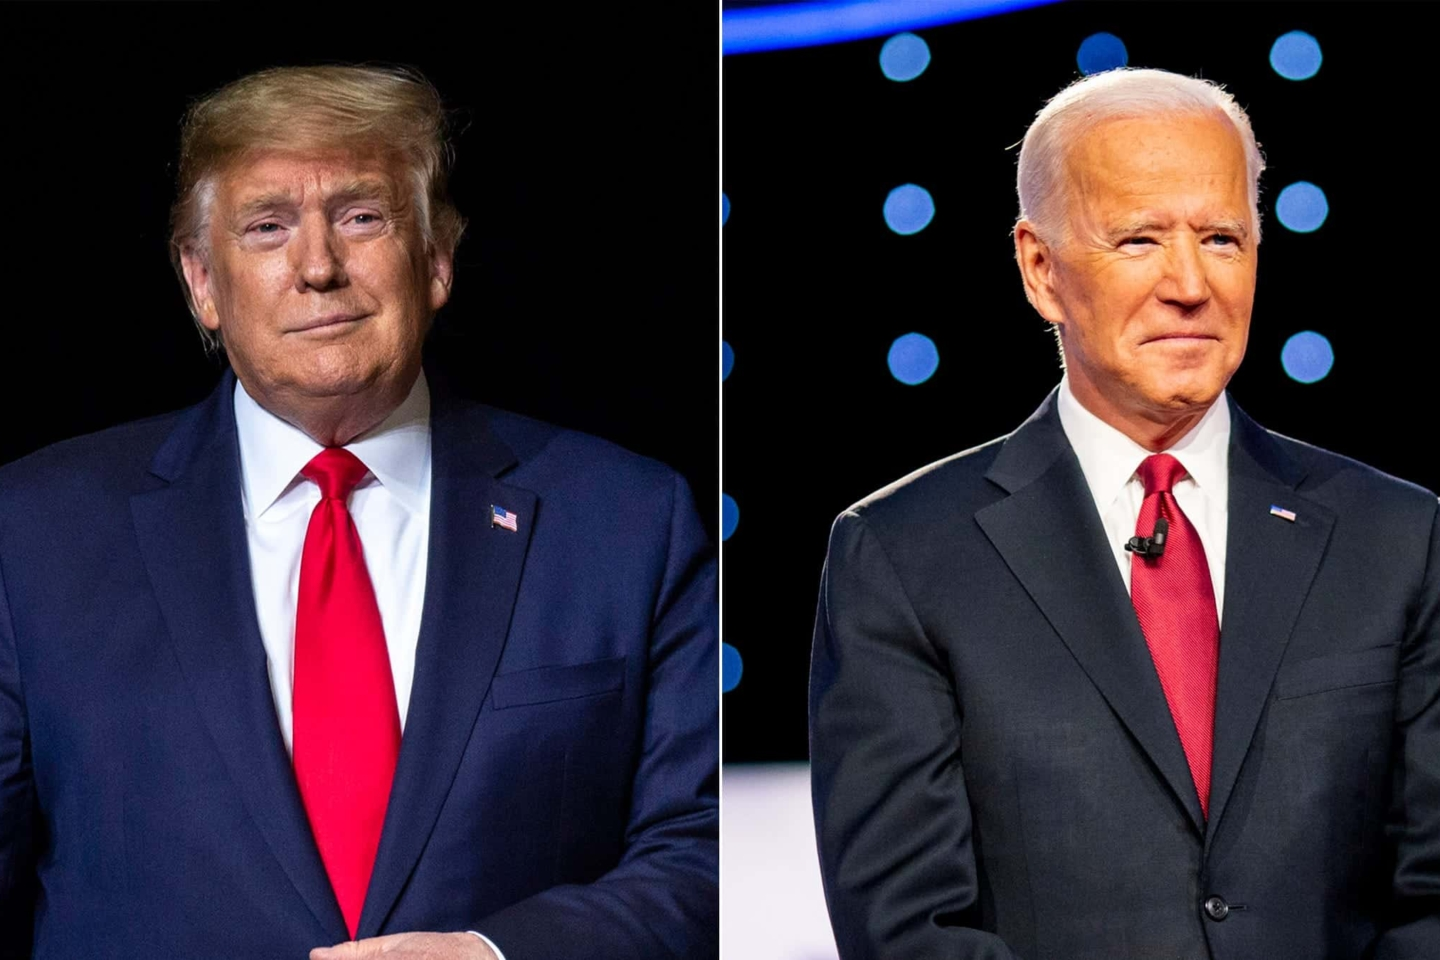 Trump vs Biden 2020 US Election